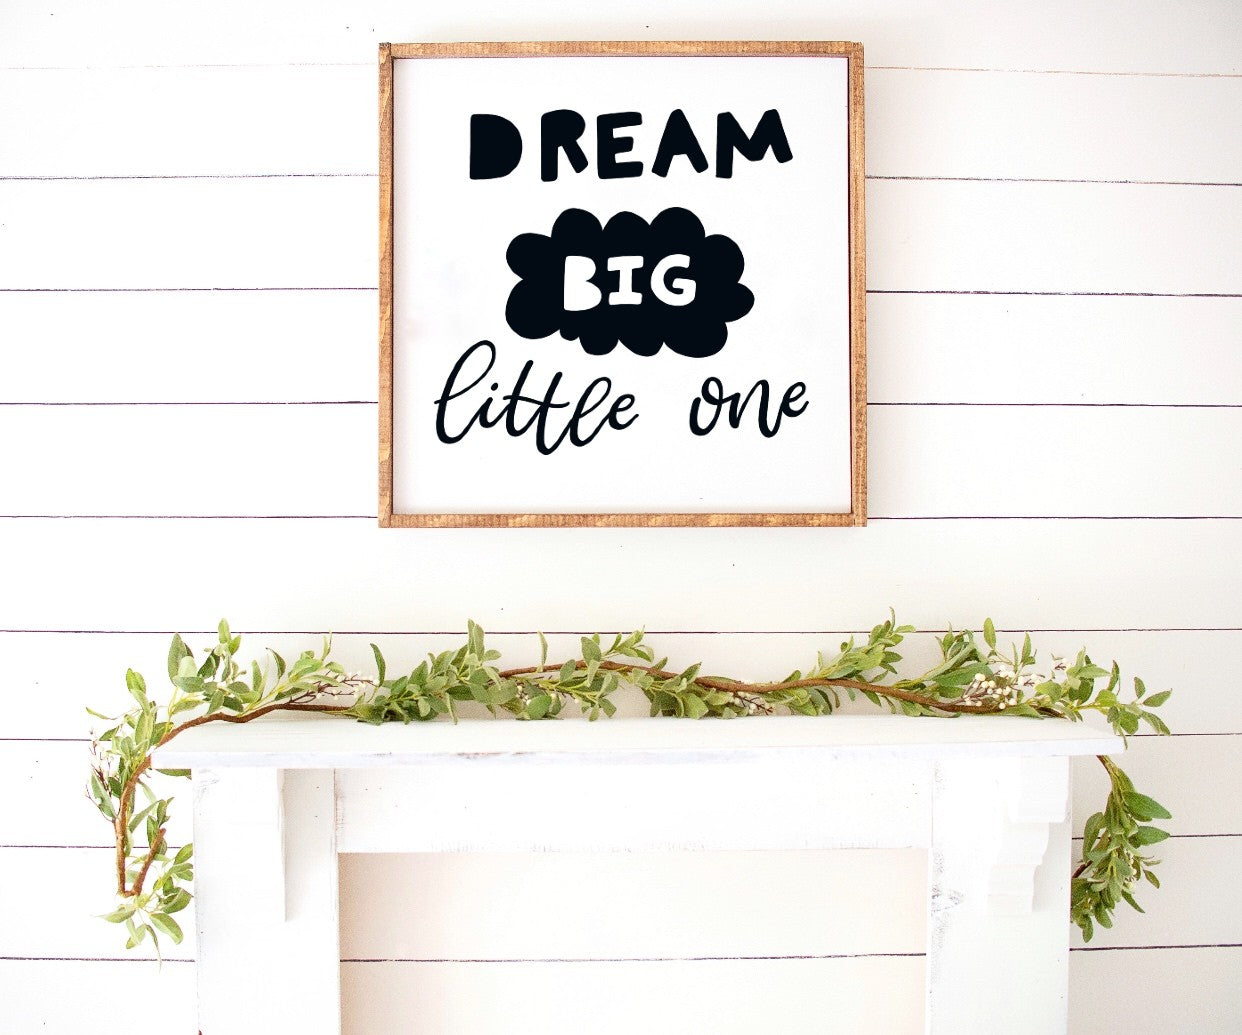 Dream big little one - Kids Scandinavian Monochrome Wooden Sign